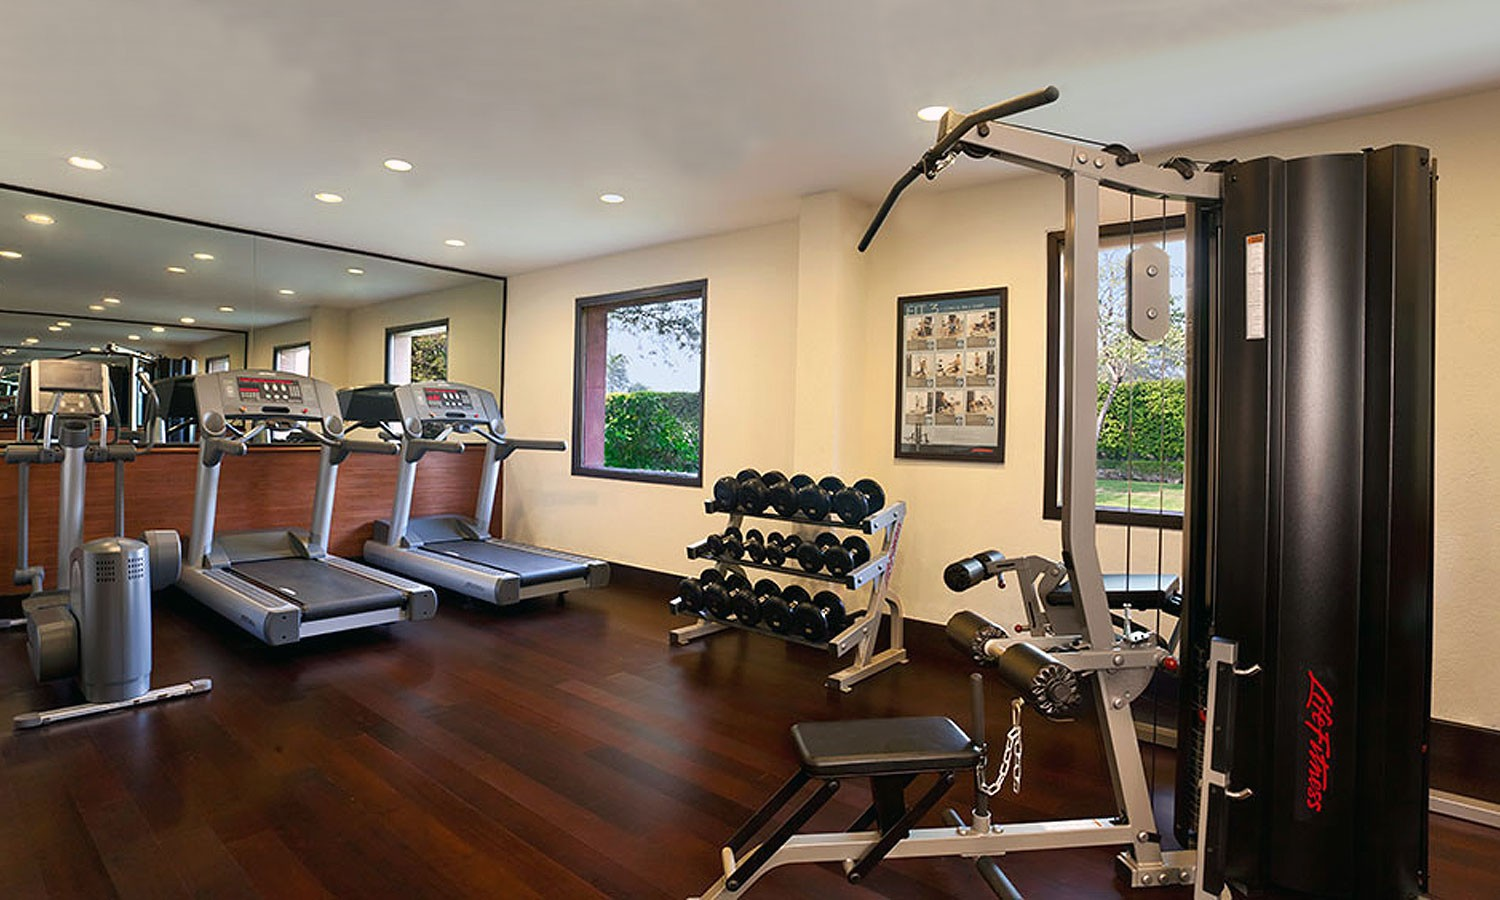 Fitness Centre Trident Hotel Agra